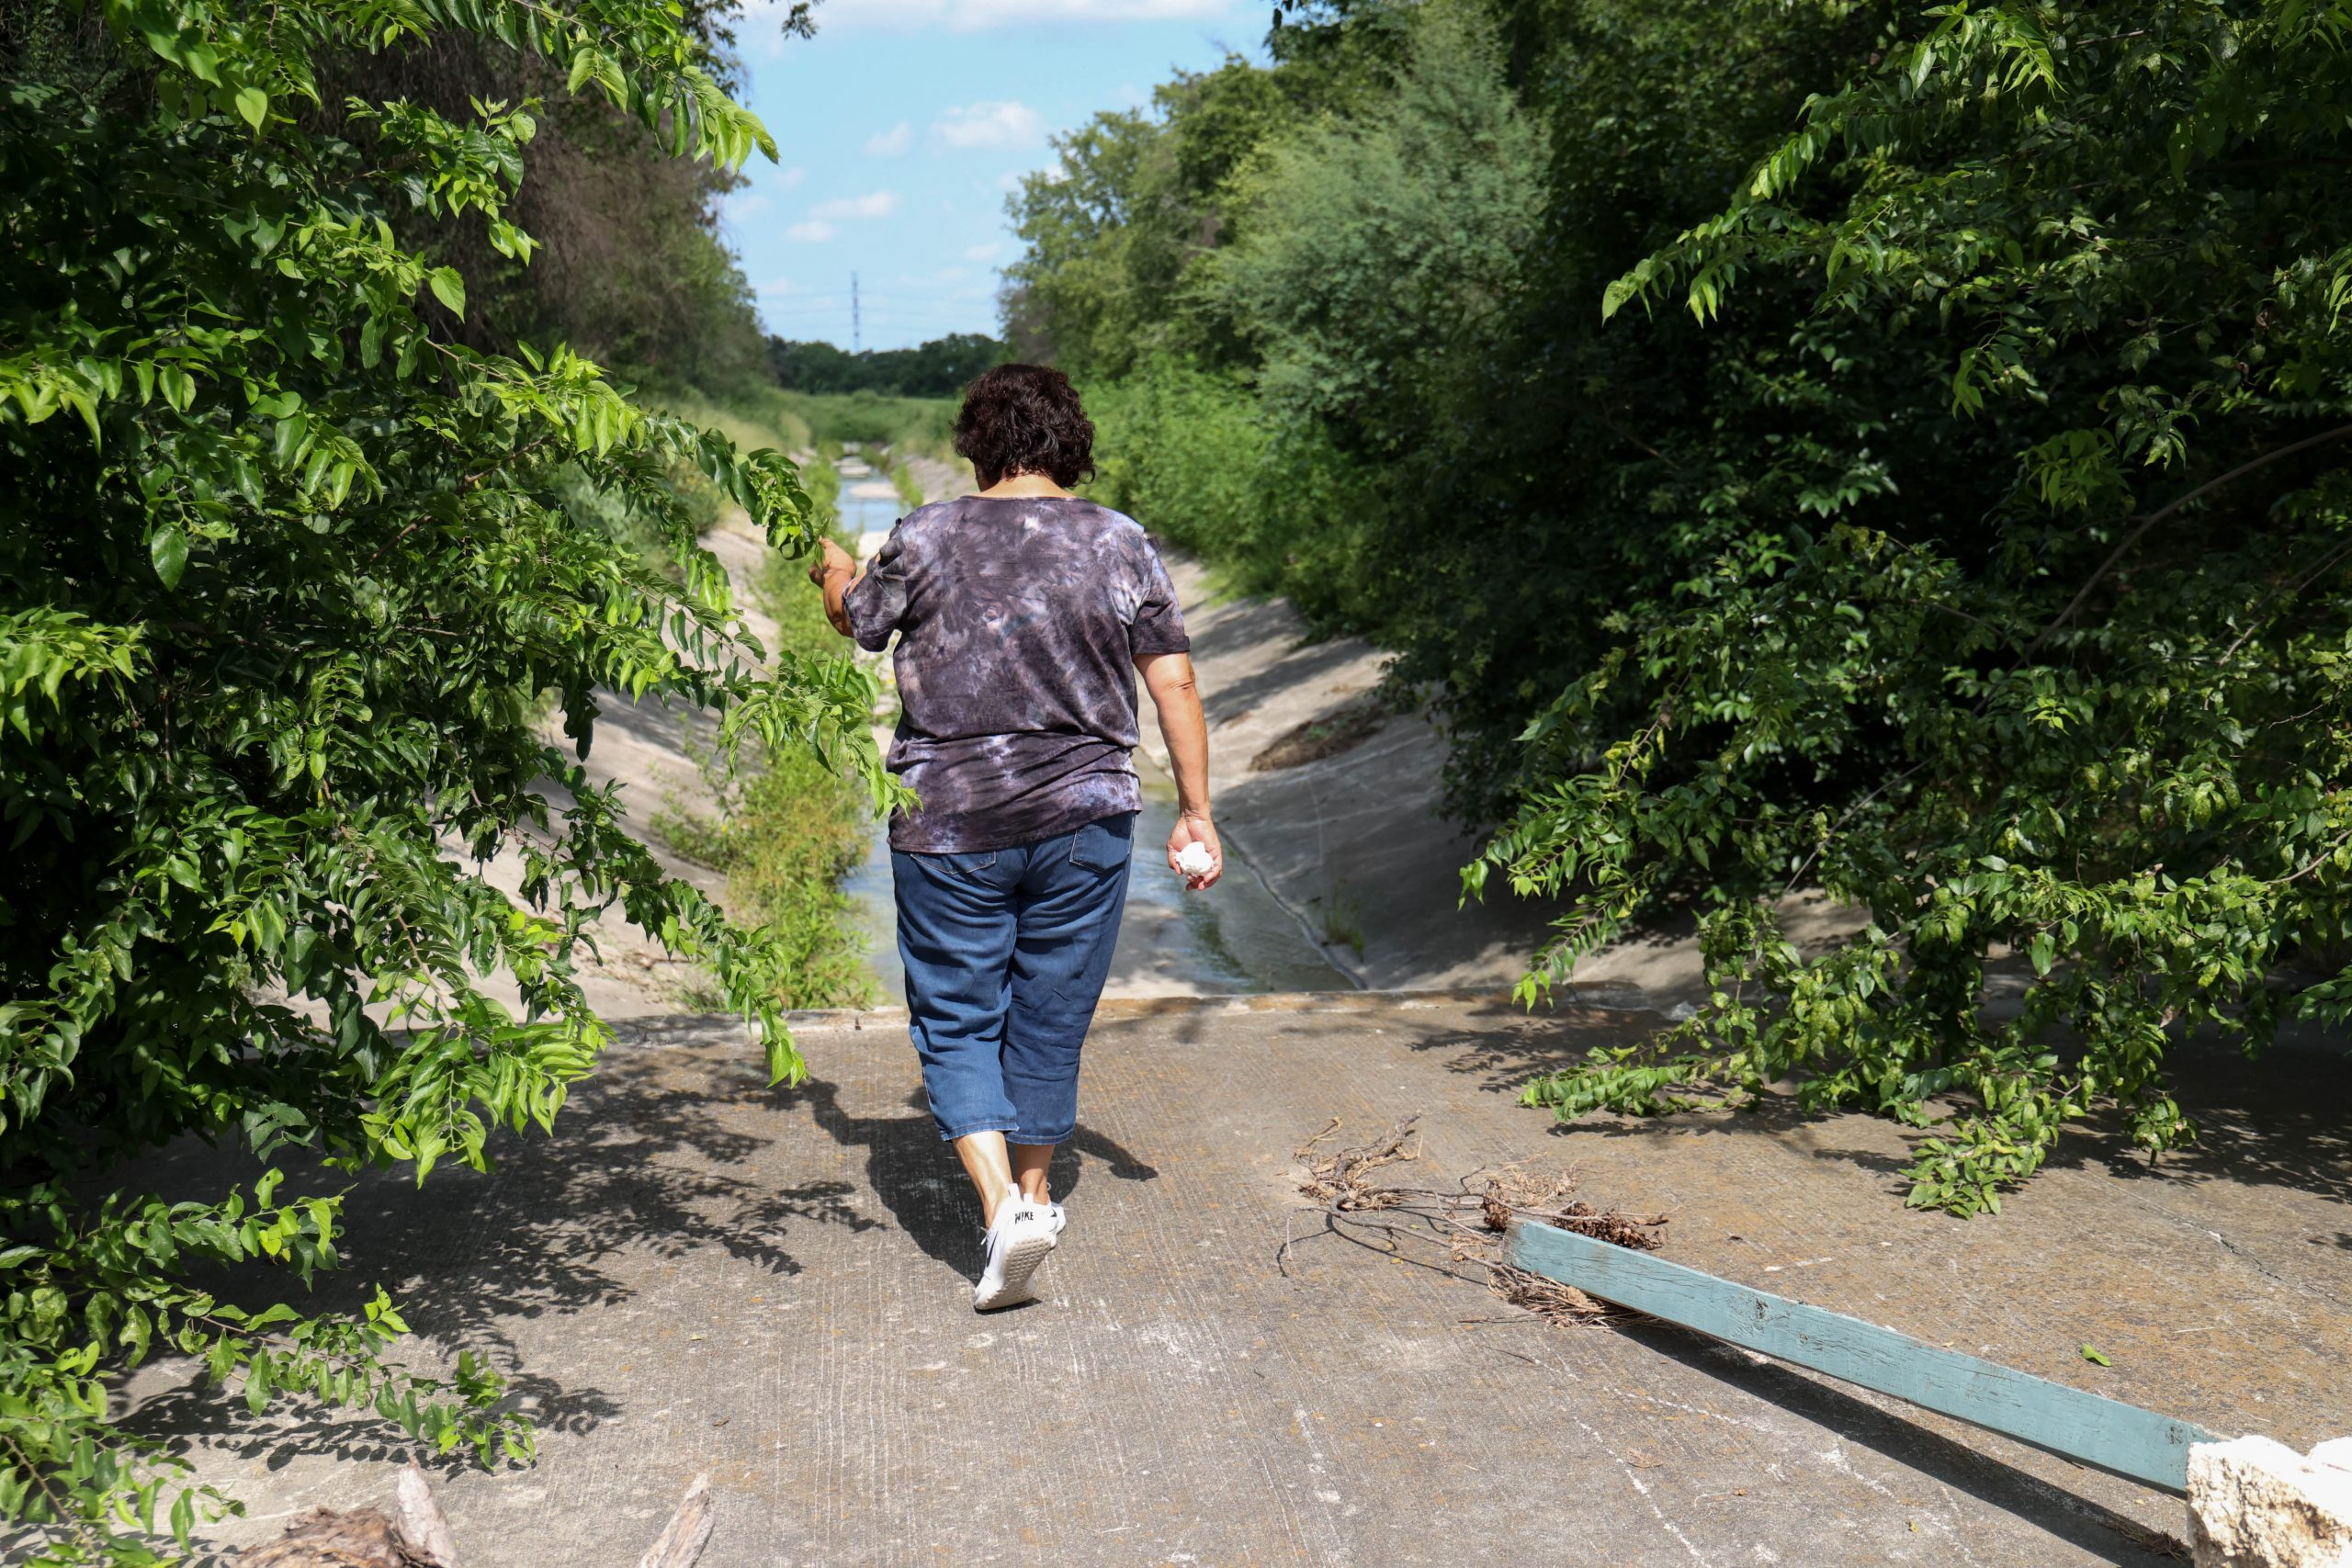 Baca points to where she and her friends used to walk and explore after school in a brushy area adjacent to her childhood home.